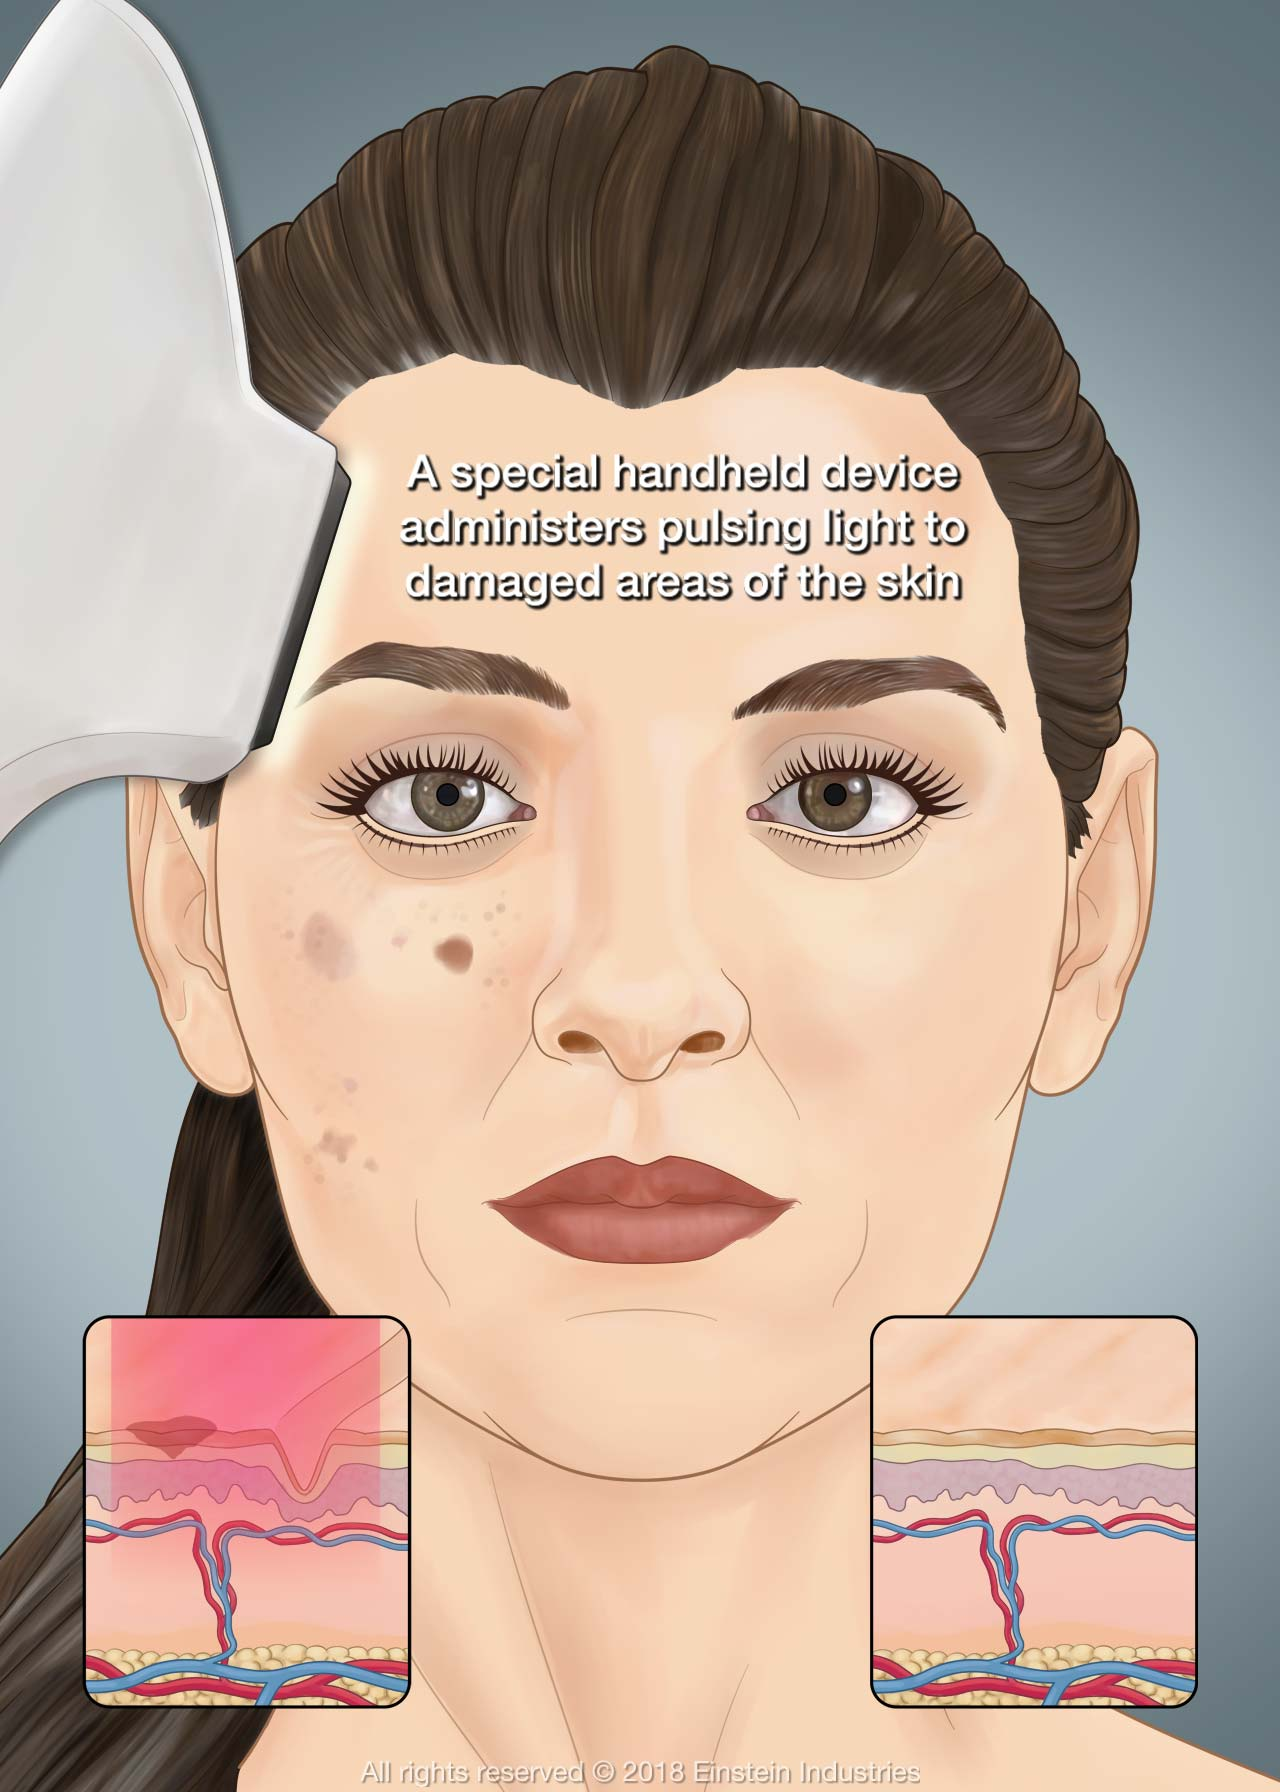 Illustration of woman with blemishes receiving IPL photofacial treatment. In background, the tissues below the skin are shown inflamed before treatment and normal afterward.